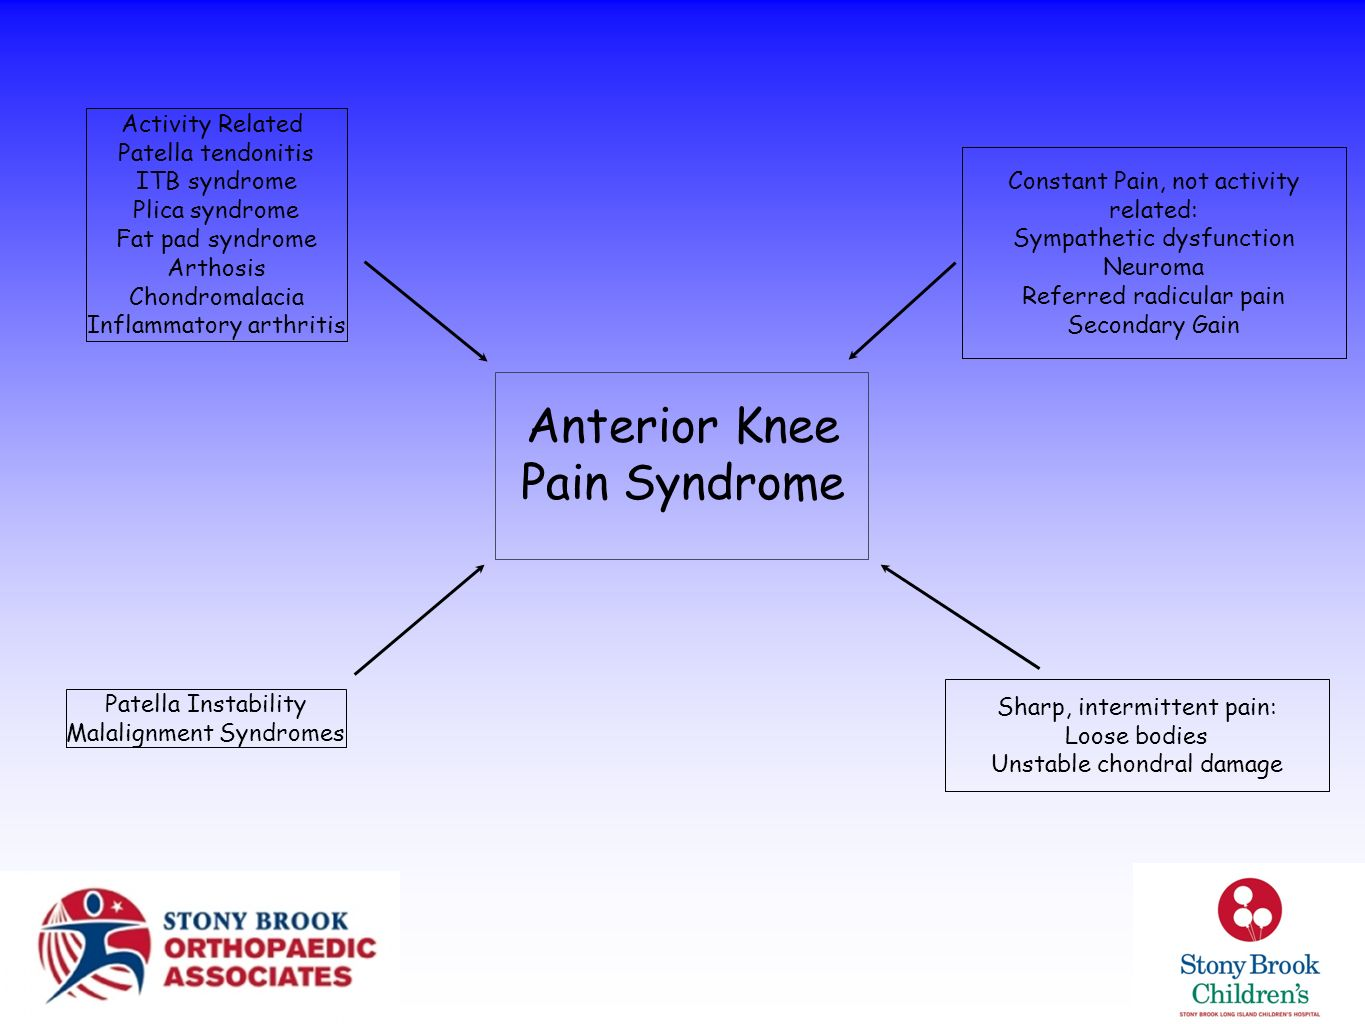 Anterior Knee Pain Syndrome Sharp, intermittent pain: Loose bodies Unstable chondral damage Constant Pain, not activity related: Sympathetic dysfuncti